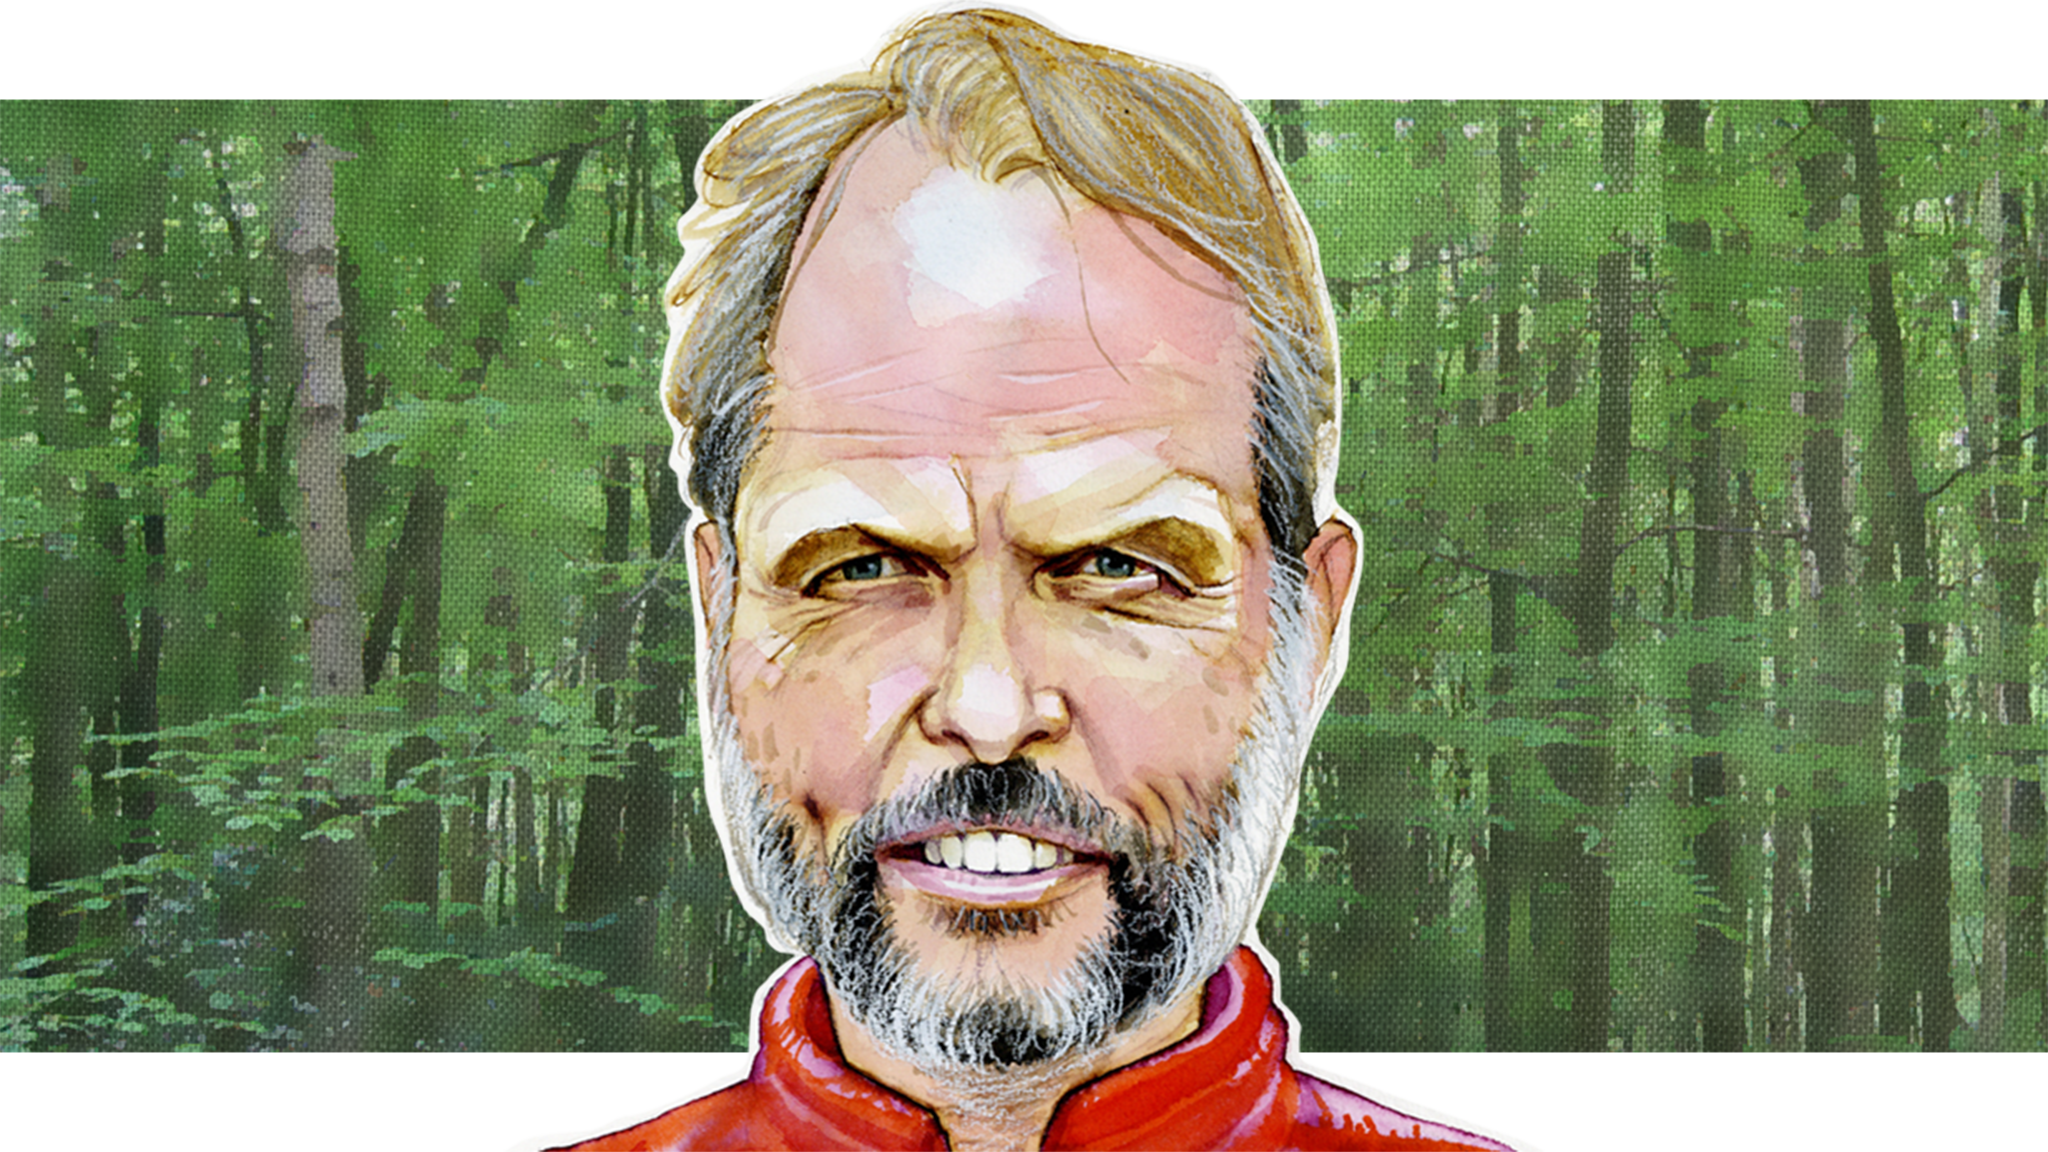 Explorer Erling Kagge on why we walk and the tyranny of tech